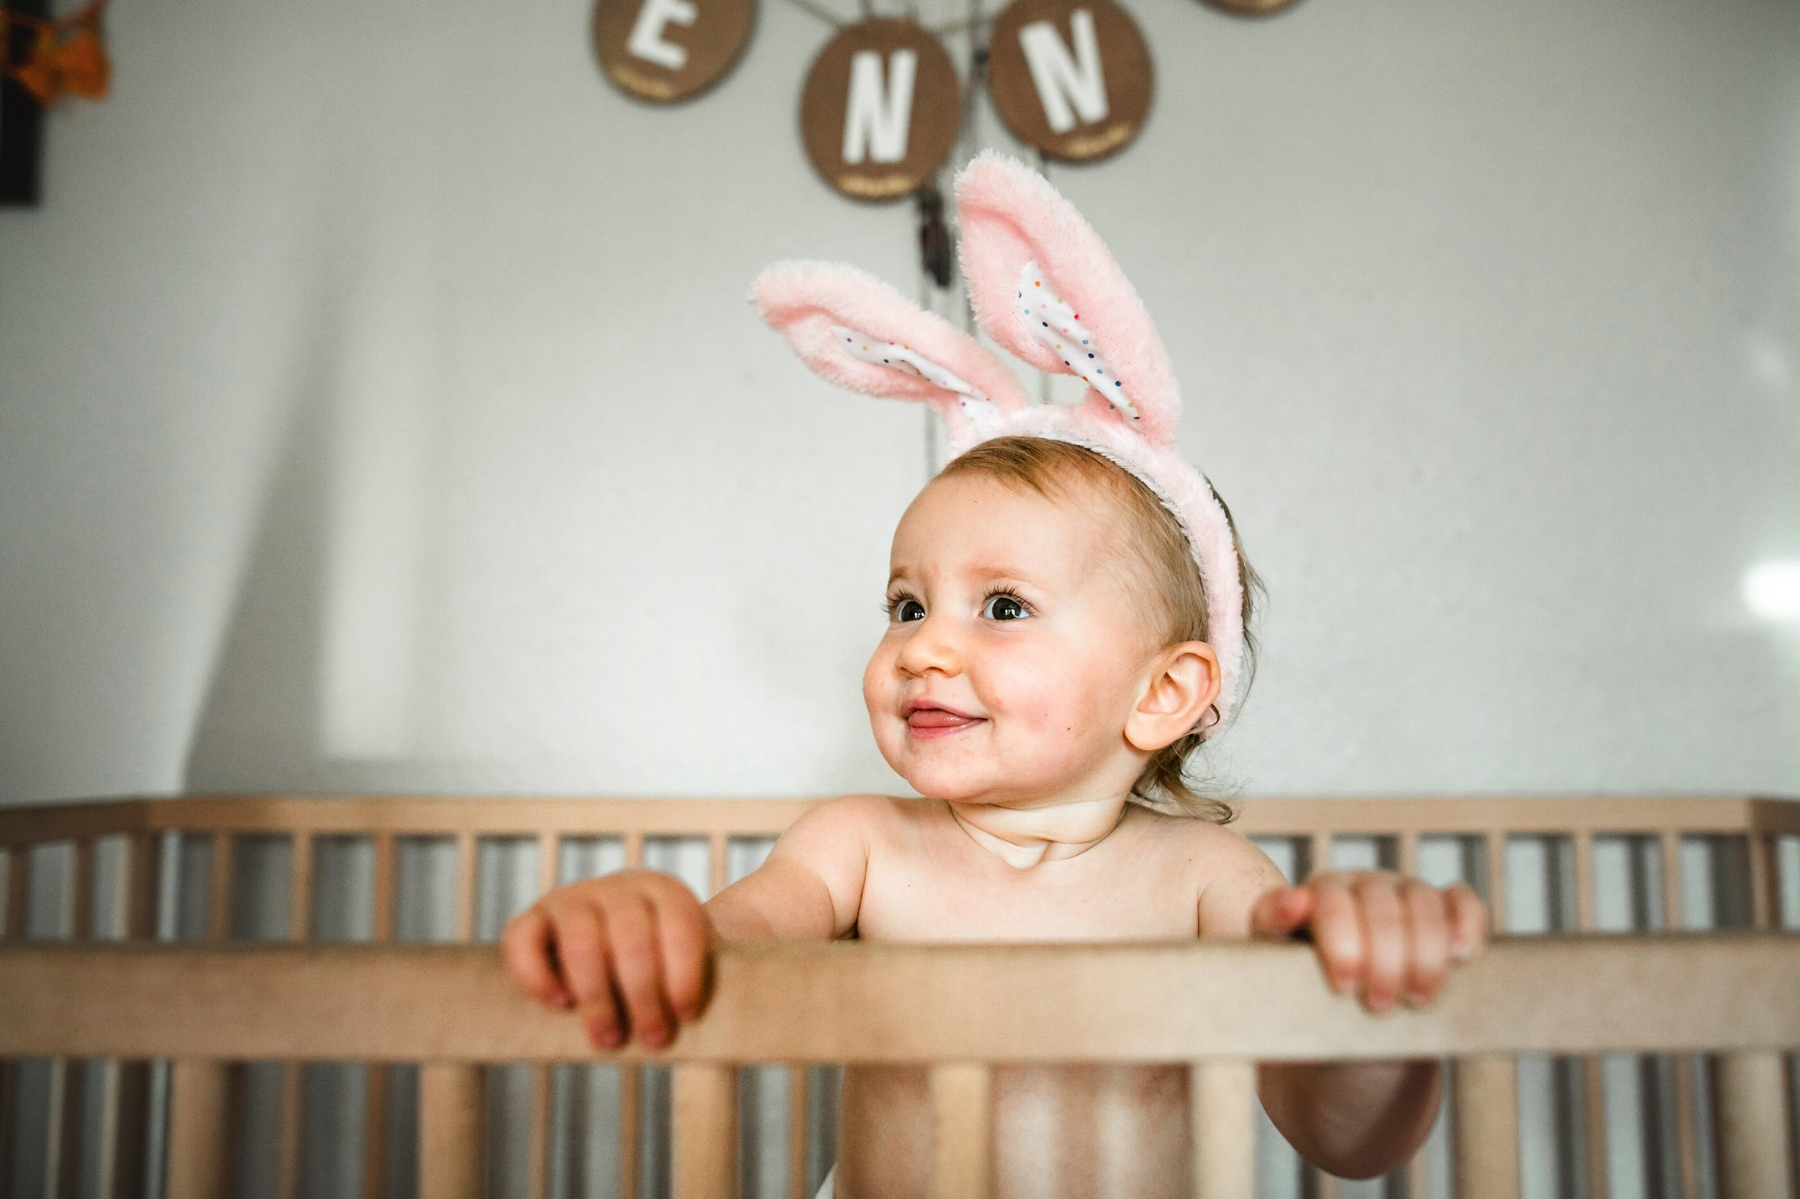 She insisted on the ears. How could I say no?